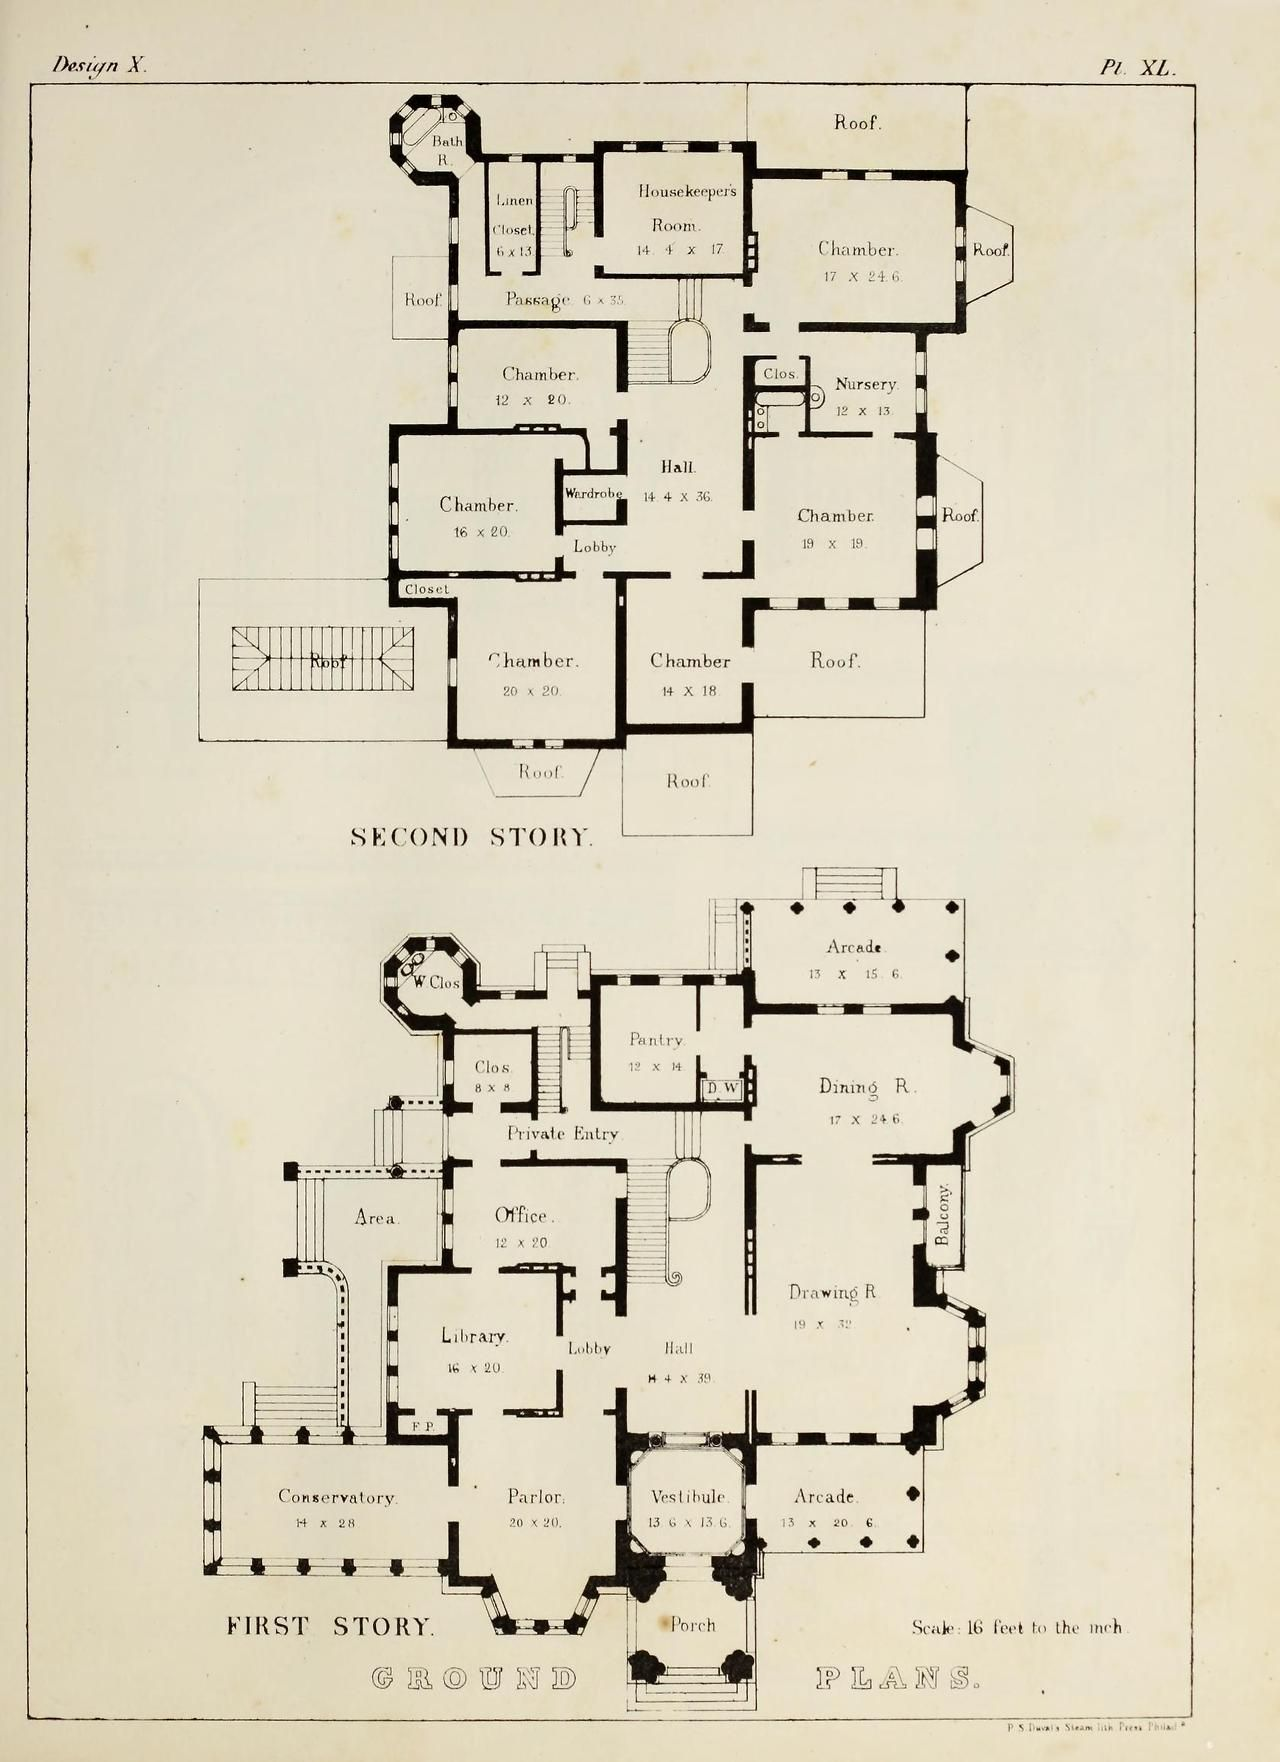 Plans For A Norman Style Villa Mansion Floor Plan House Plans How To Plan